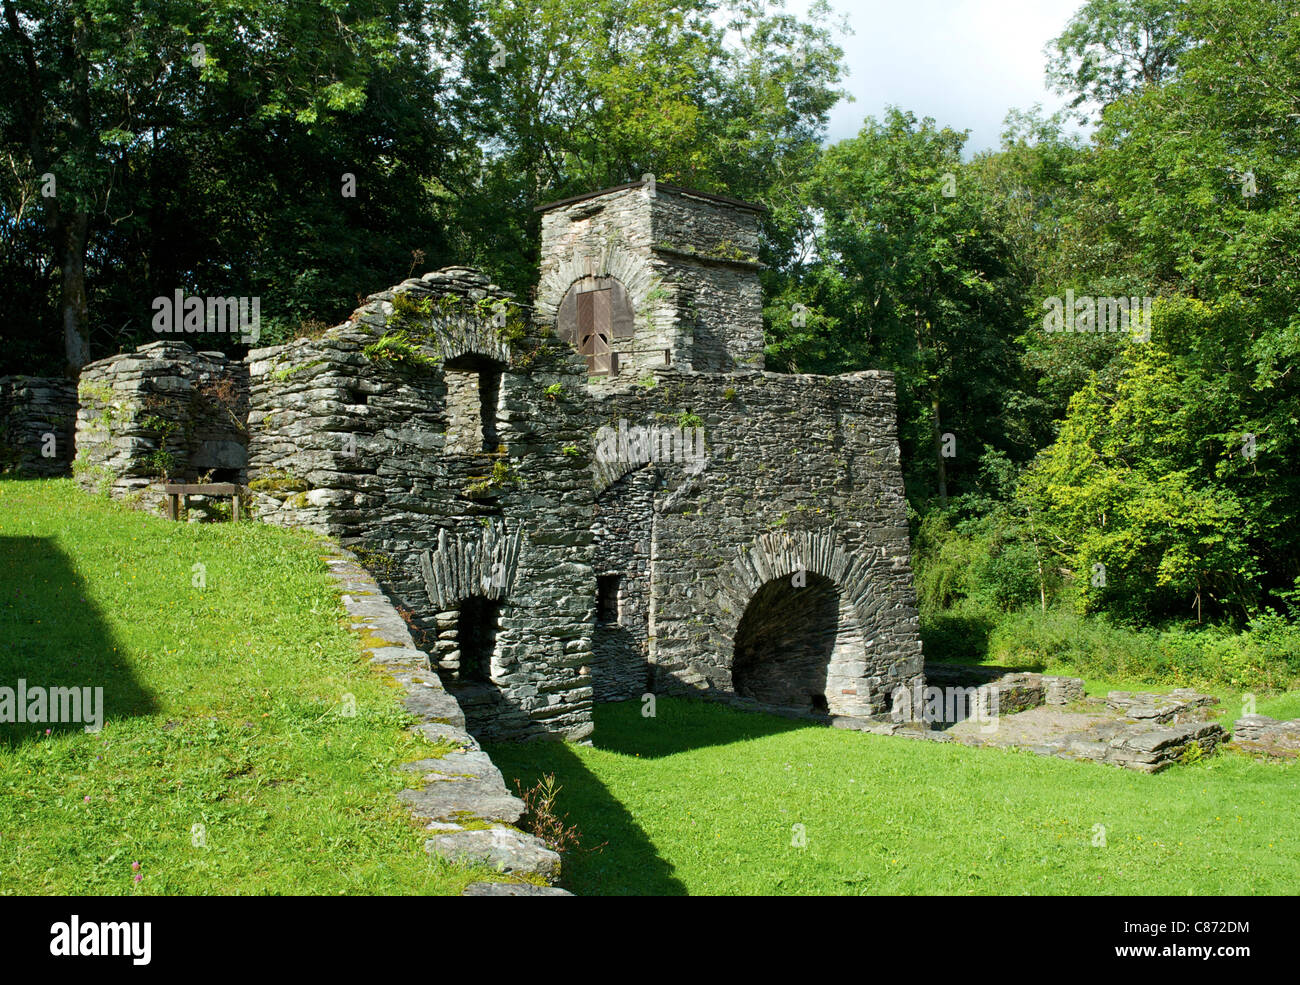 The restored remains of the Duddon Iron Works and furnace, near Broughton, Cumbria, England UK - Stock Image